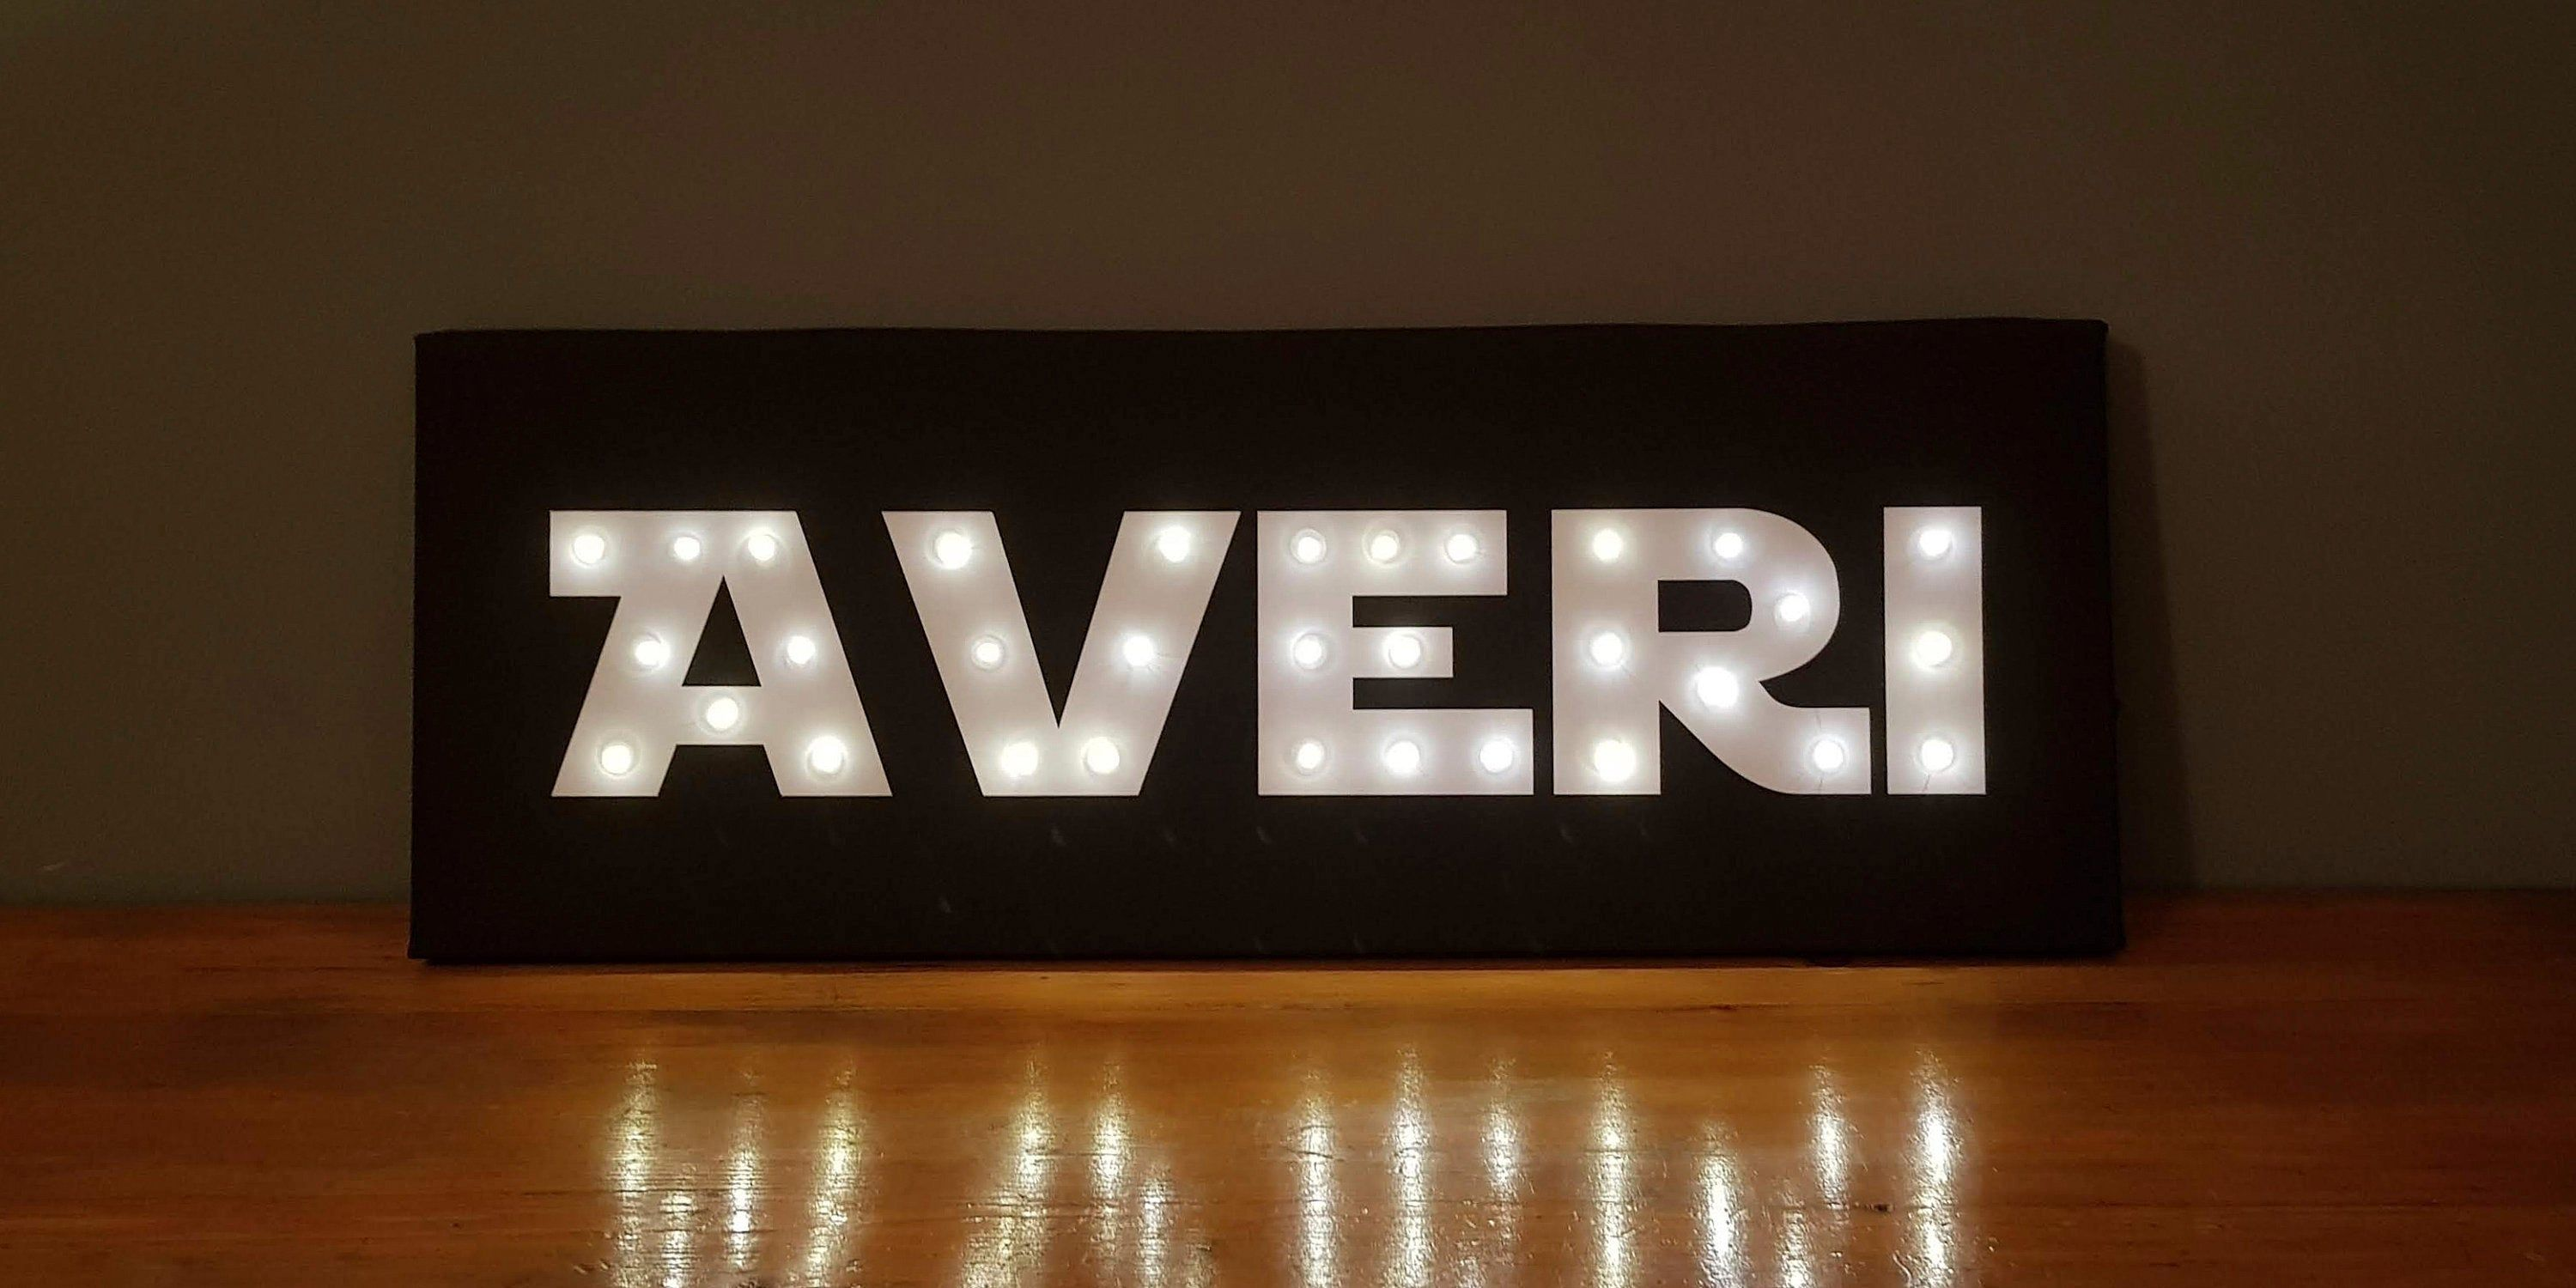 Your name in lights, Custom sign with name in lights